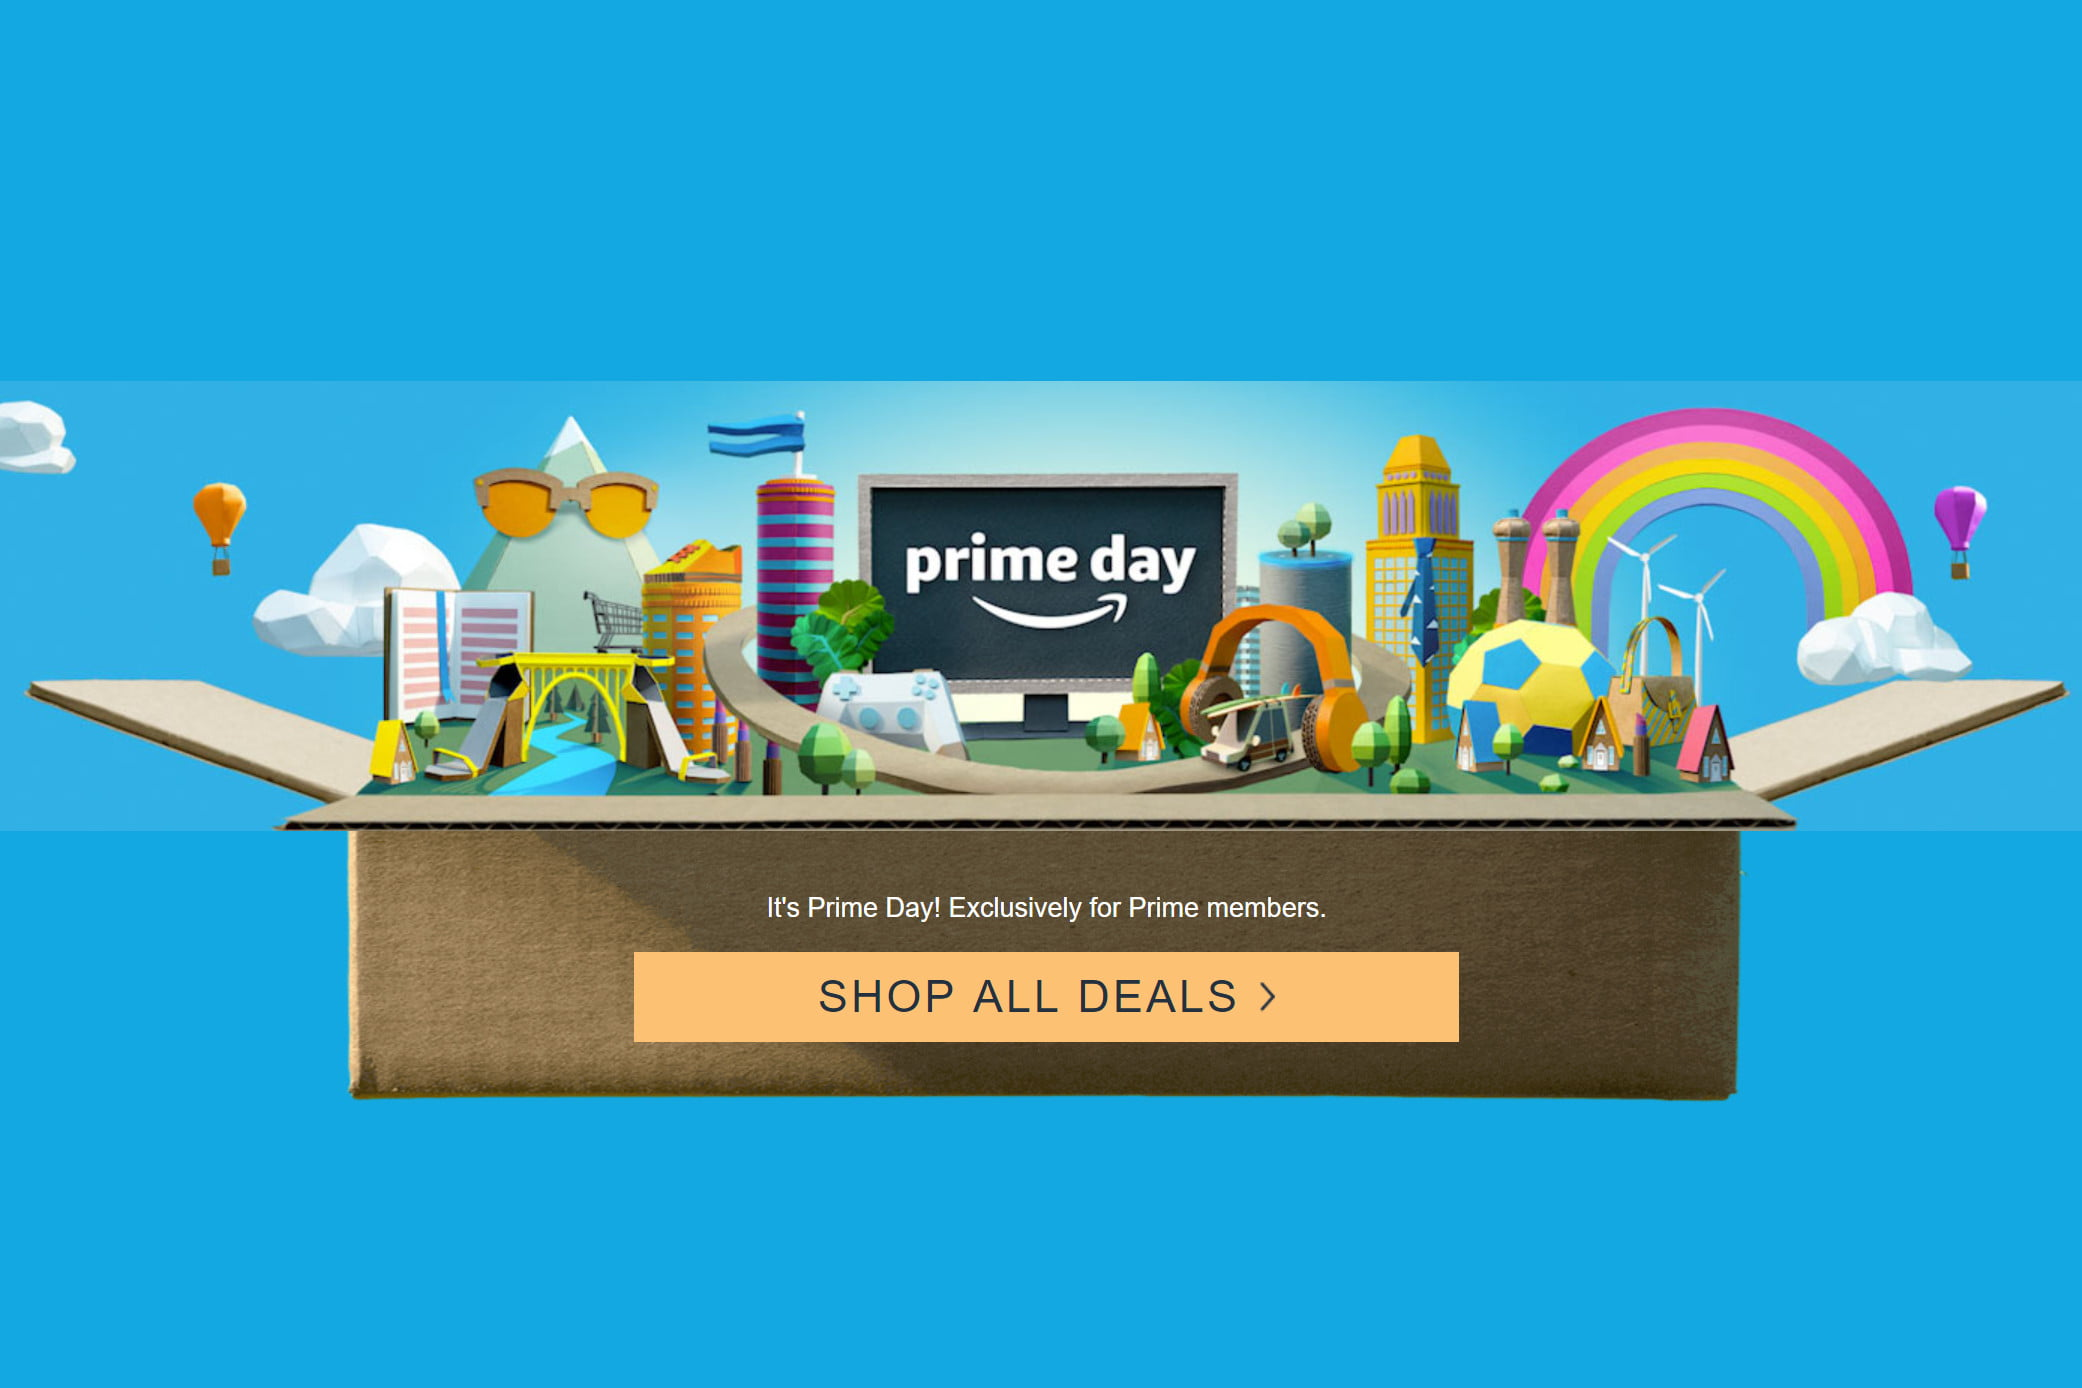 amazon knows it s in the doghouse over prime day glitch fox carolina 21. Black Bedroom Furniture Sets. Home Design Ideas